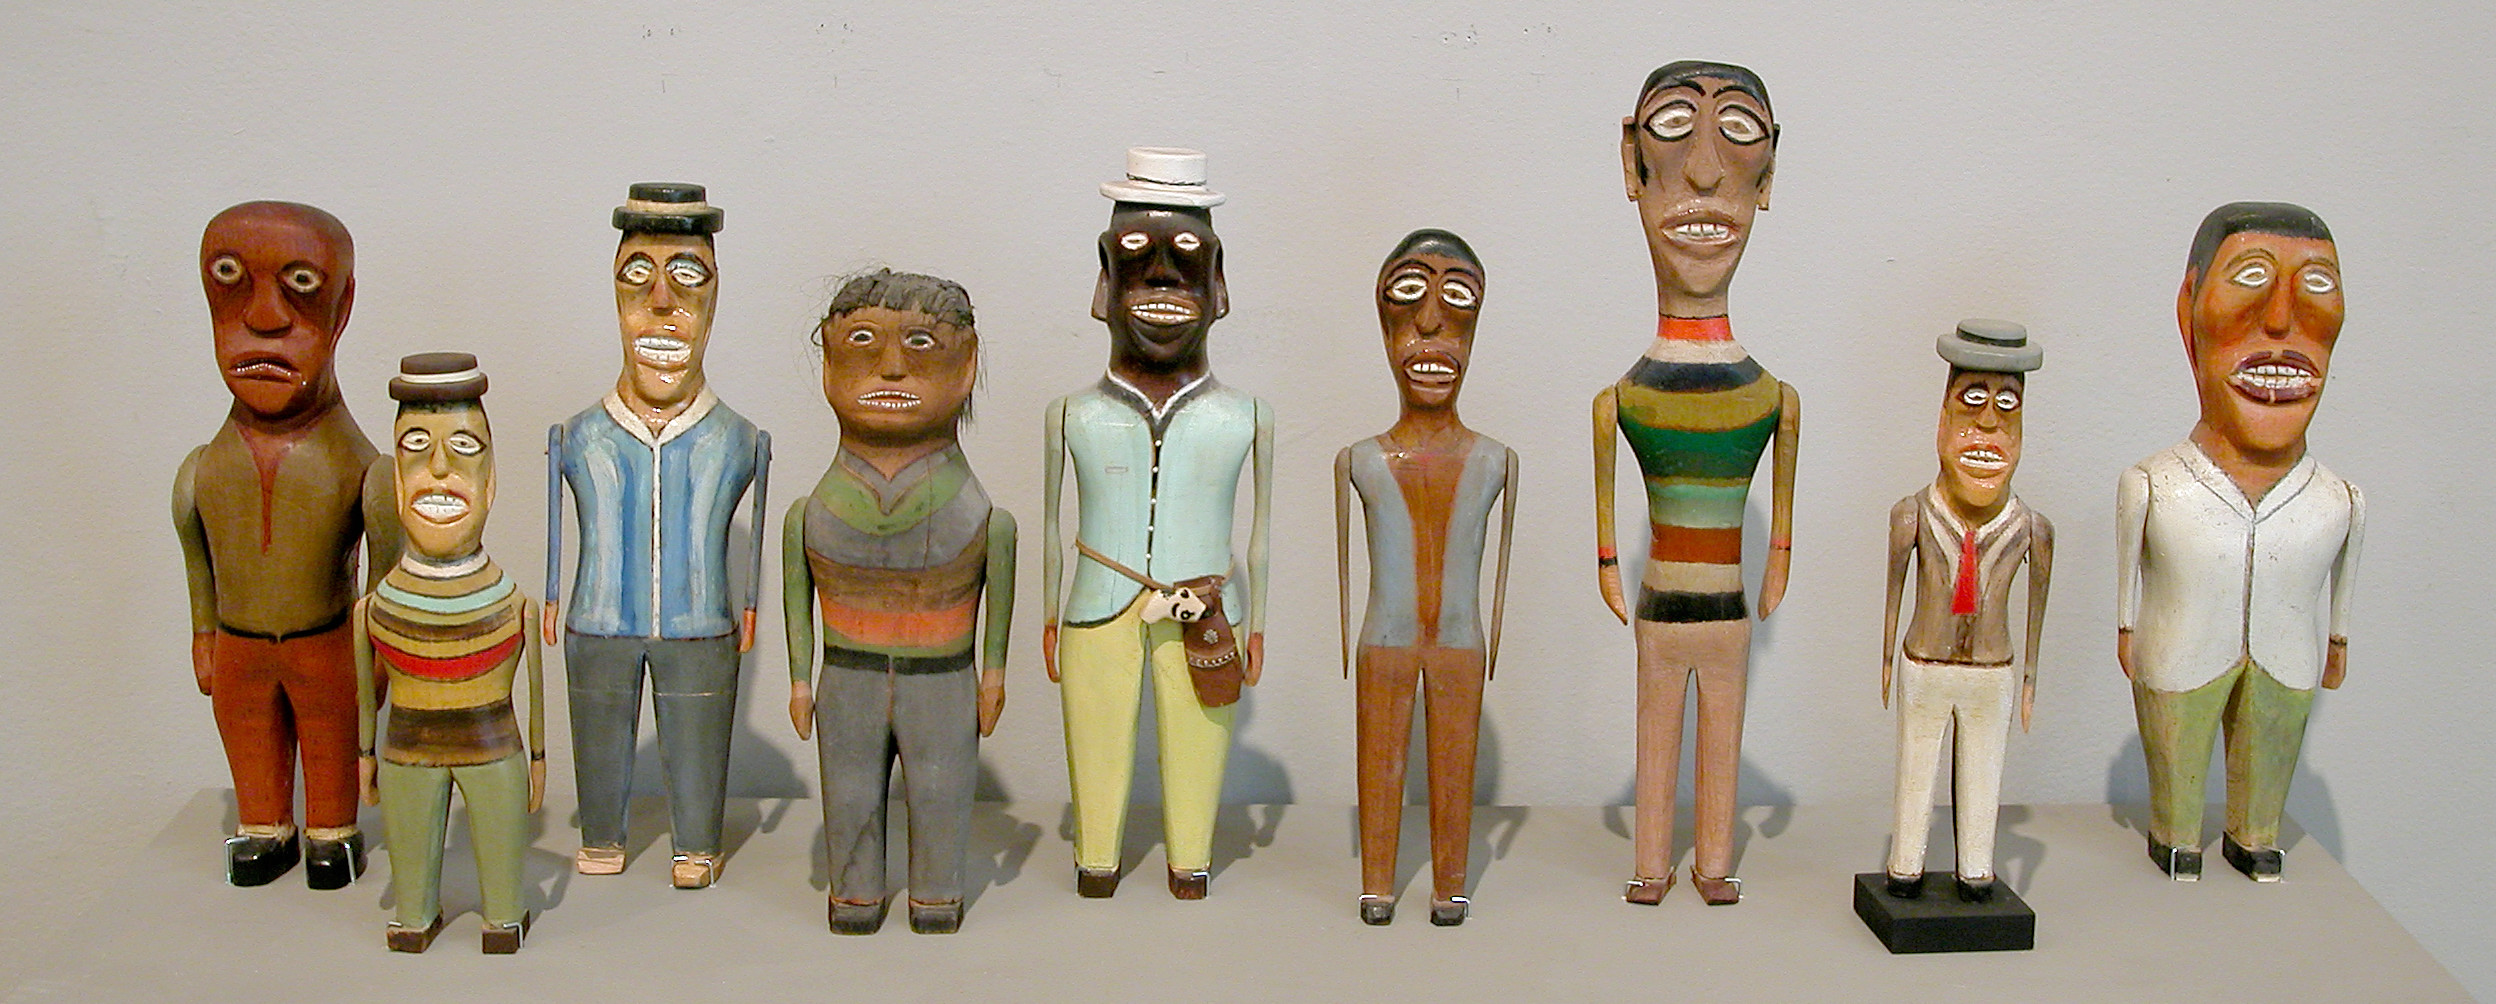 Nine wooden sculptures of figures carved by William Dawson